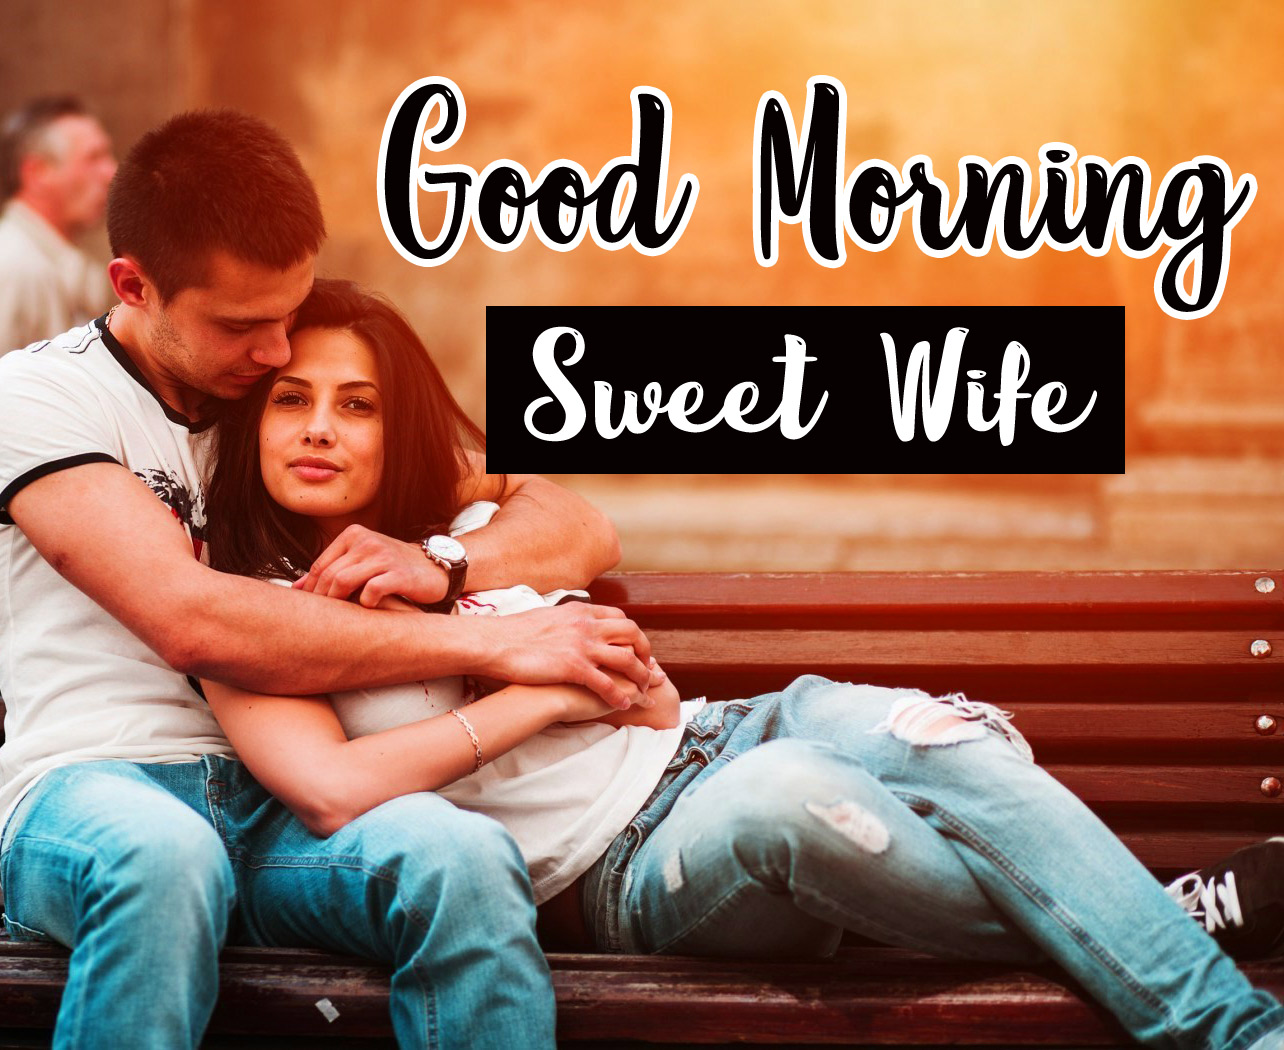 Good Morning Images for Husband Wife